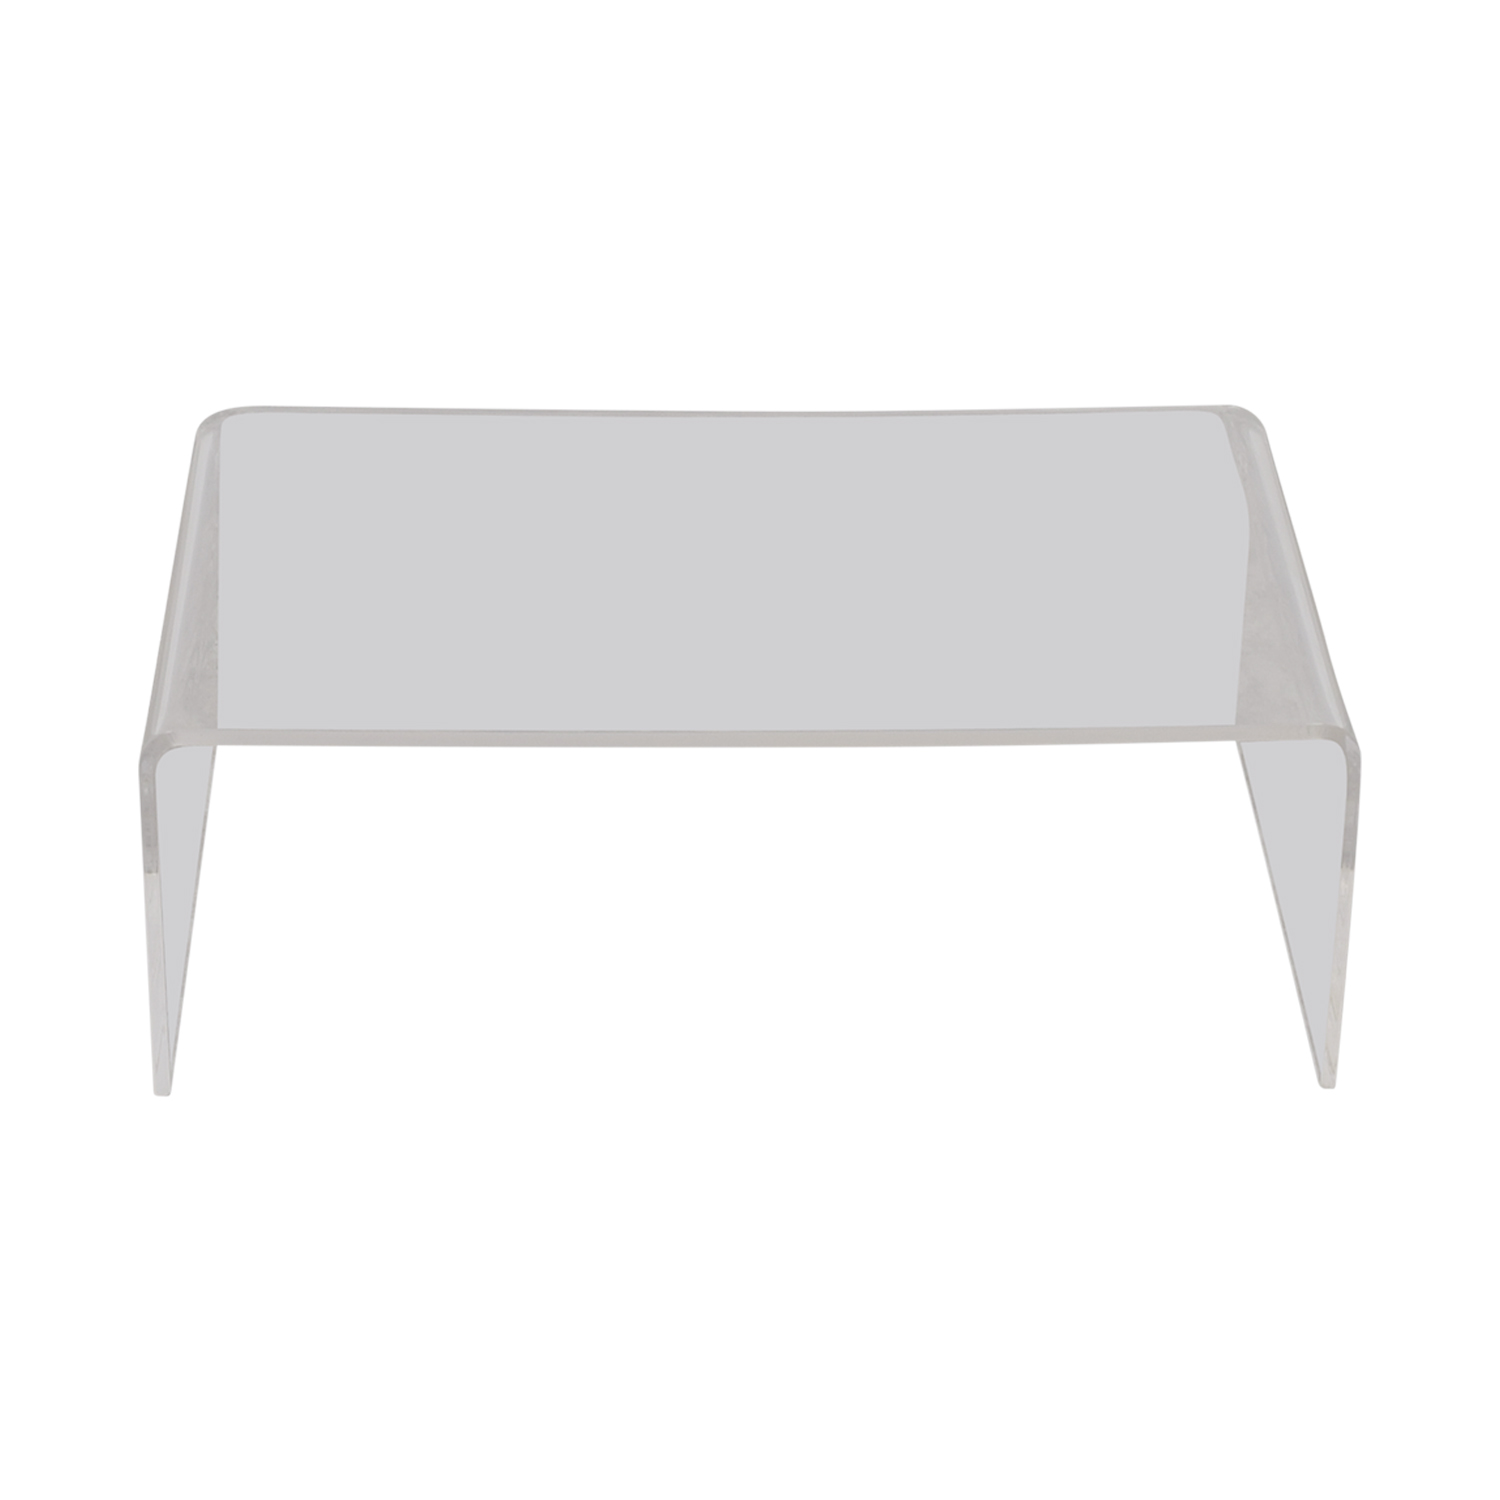 CB2 Peekaboo Acrylic Coffee Table CB2